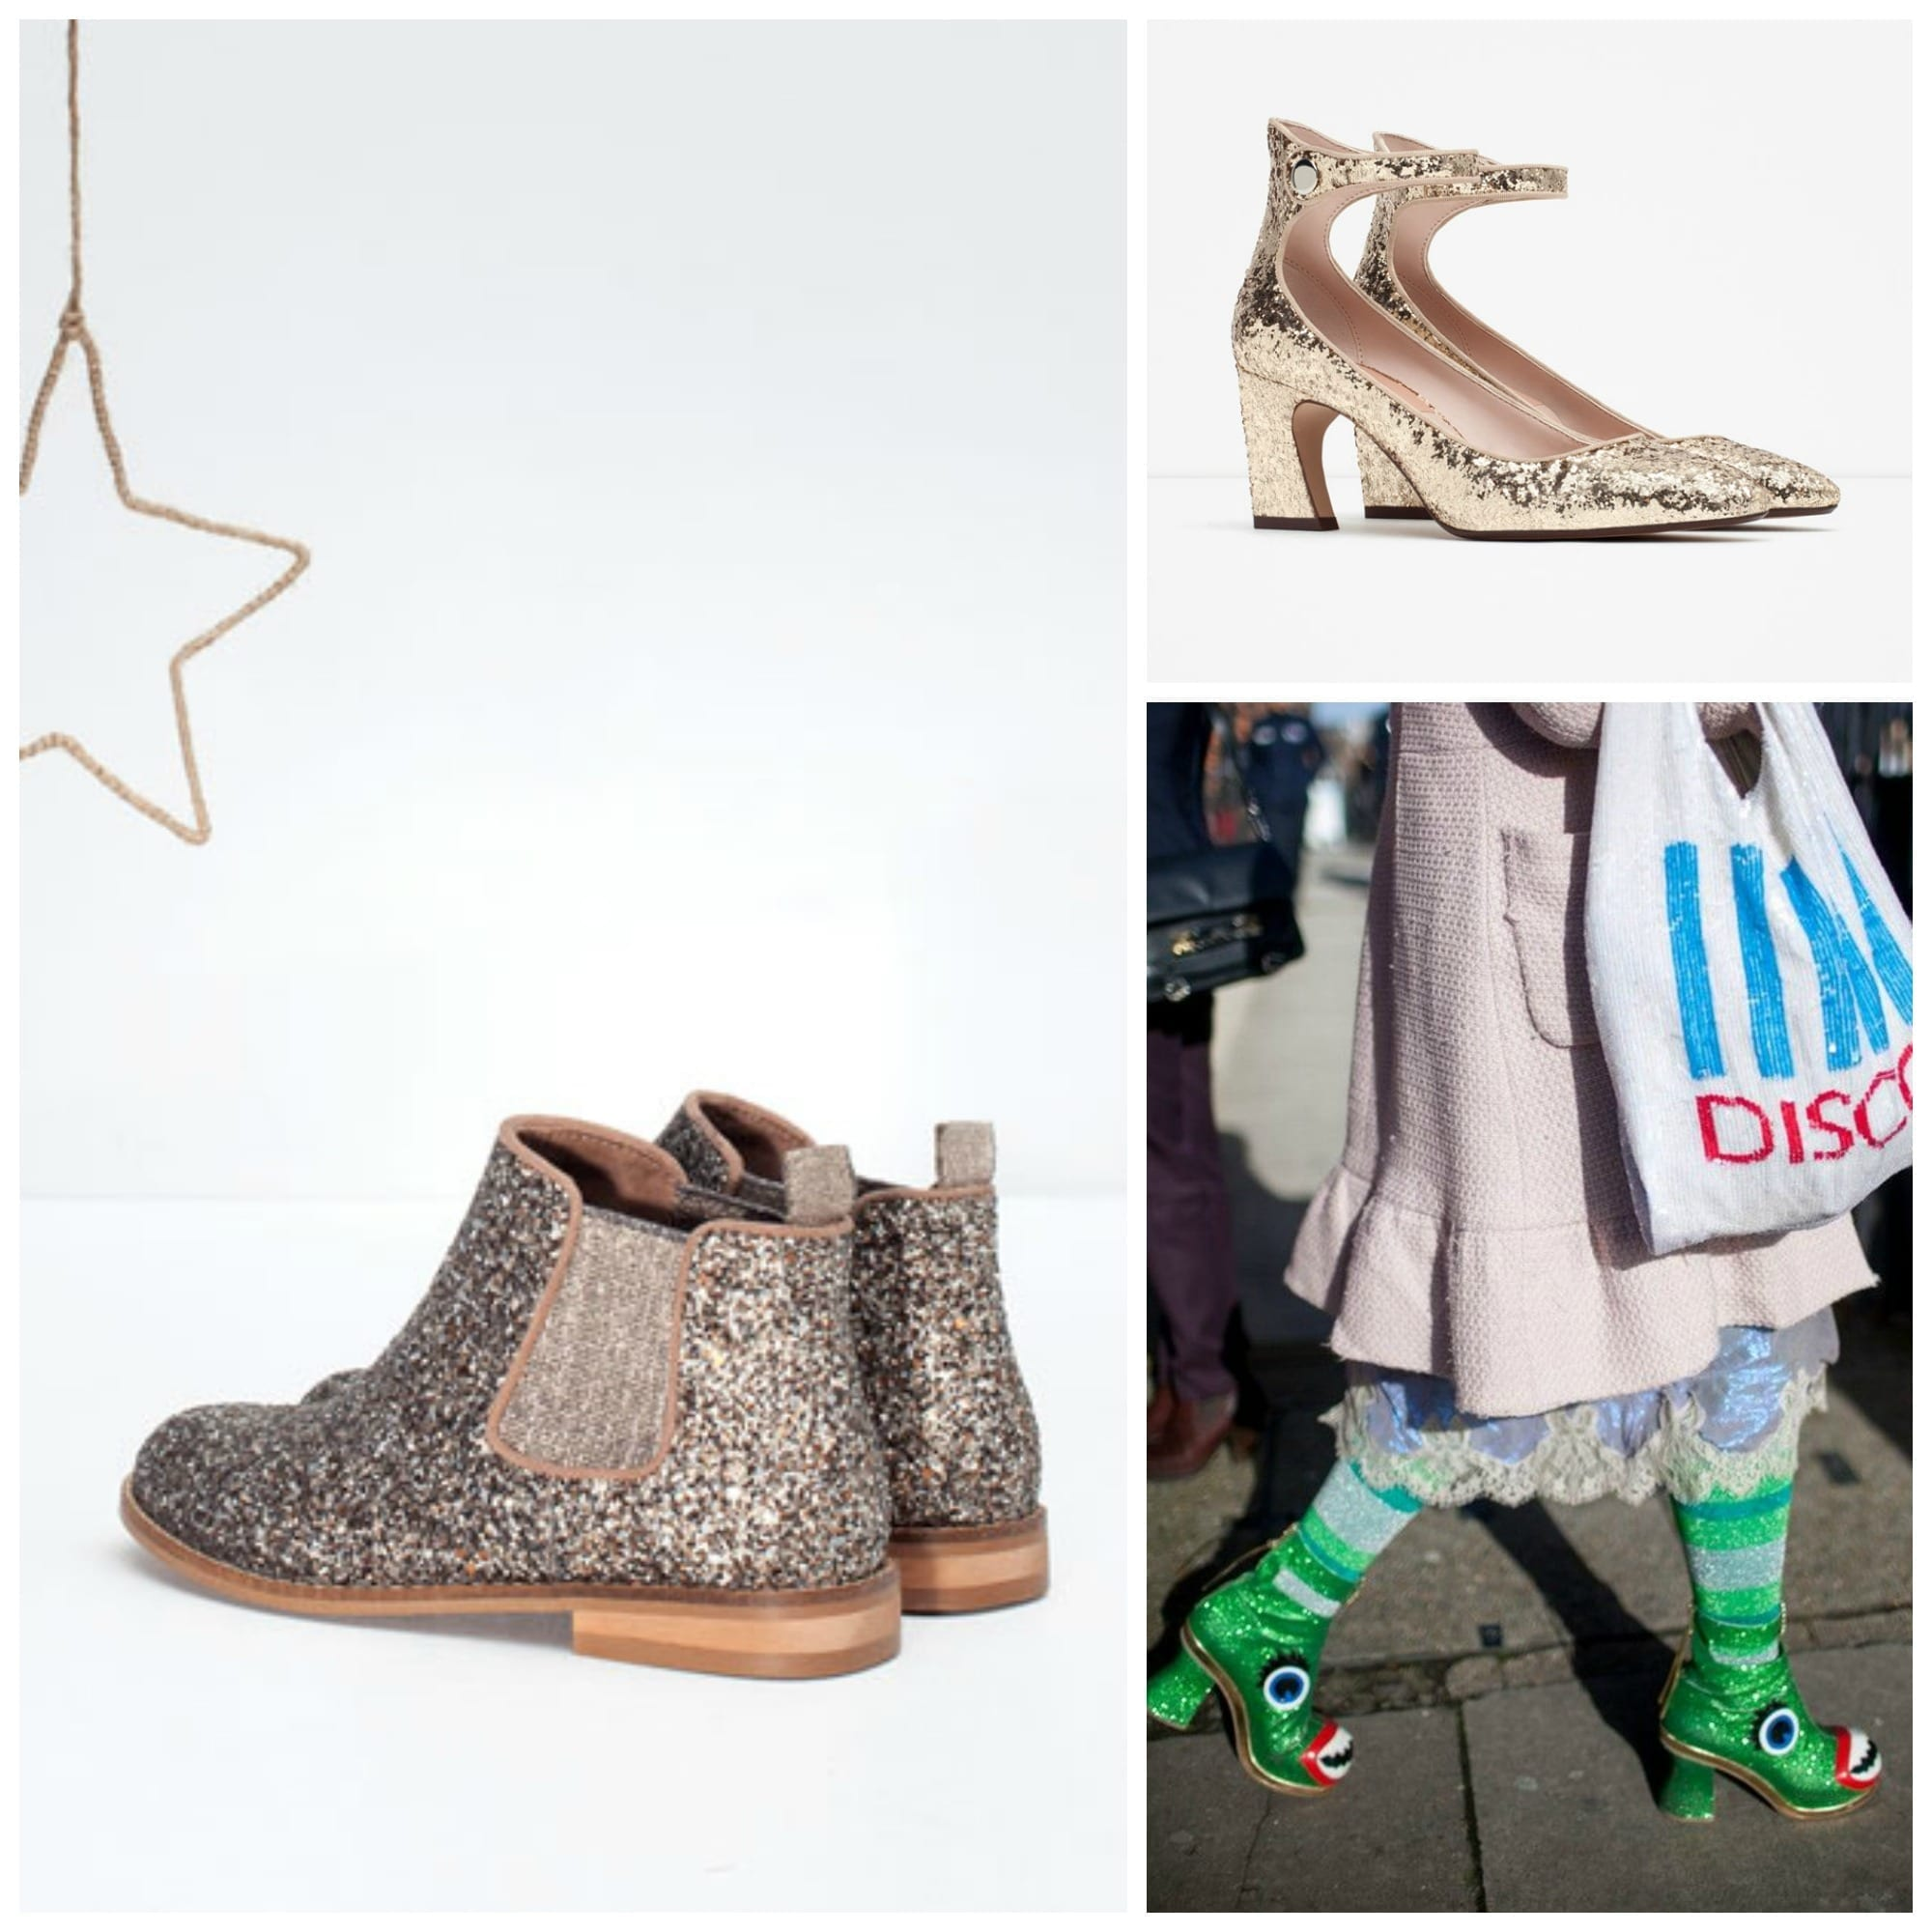 che scarpe vanno di moda, sophia webster shoes, rockstud valentino, glitter scarpe, theladycracy.it, elisa bellino, fashion blog italiane, fashion blog italia, glitter shoes zara, stivaletti zara glitter